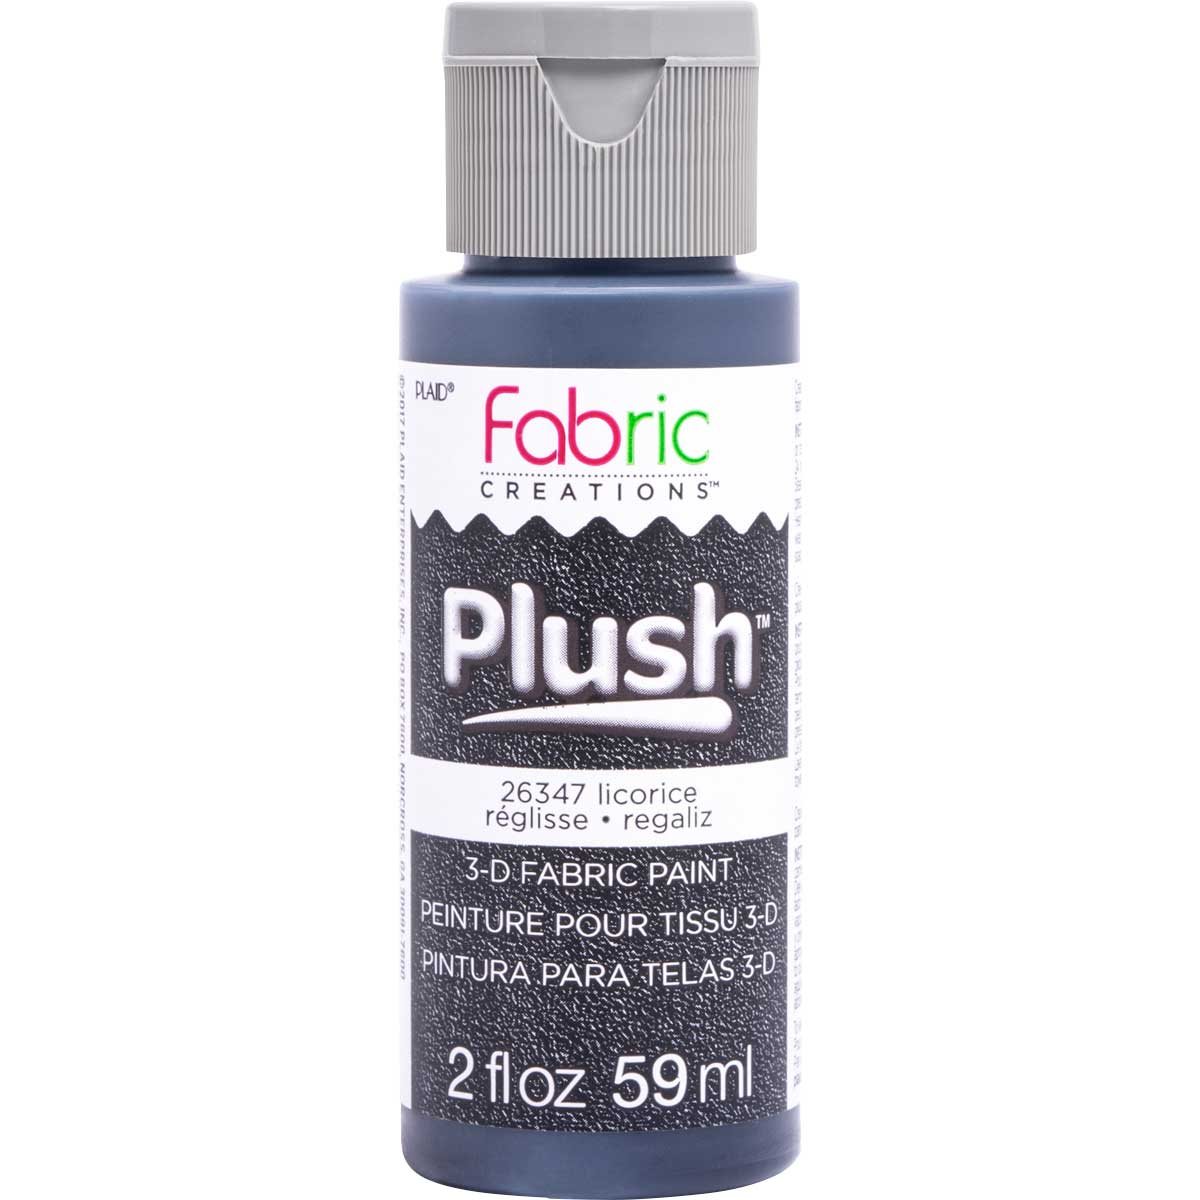 Fabric Creations™ Plush™ 3-D Fabric Paints - Licorice, 2 oz. - 26347